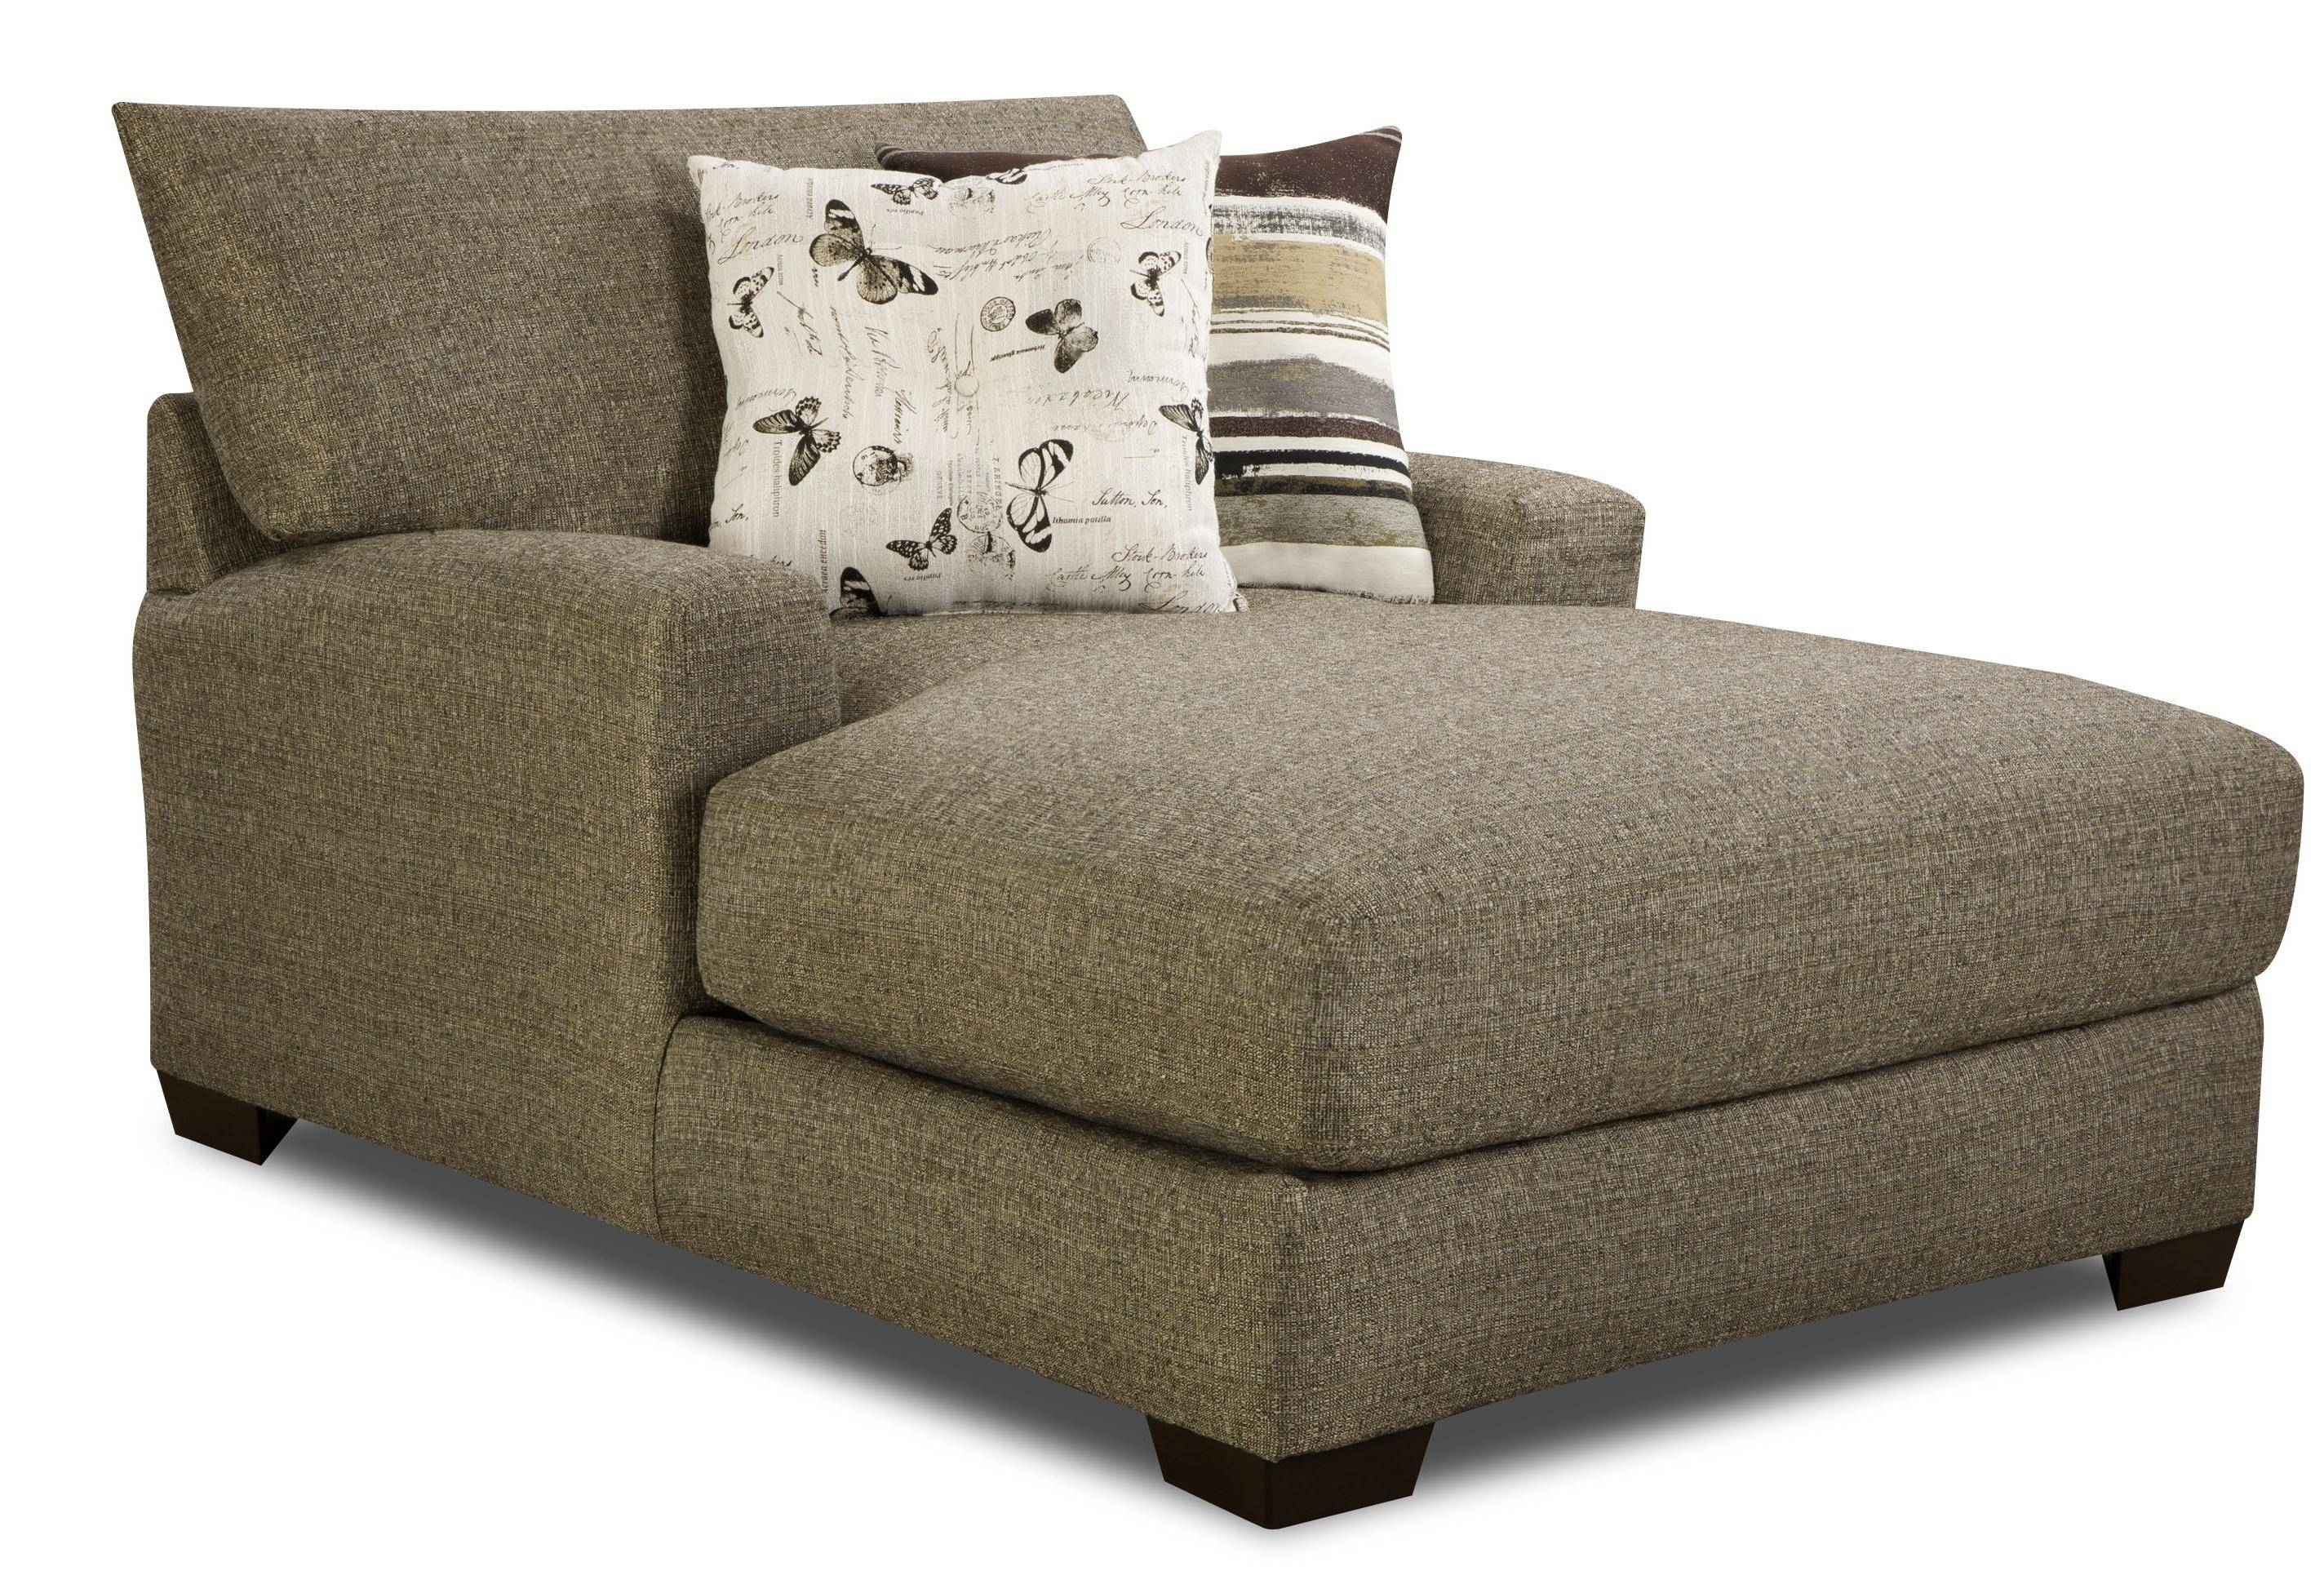 Lounge Sofa Chair – Modern Chairs Quality Interior 2017 Intended For Sofa Chairs (View 18 of 30)